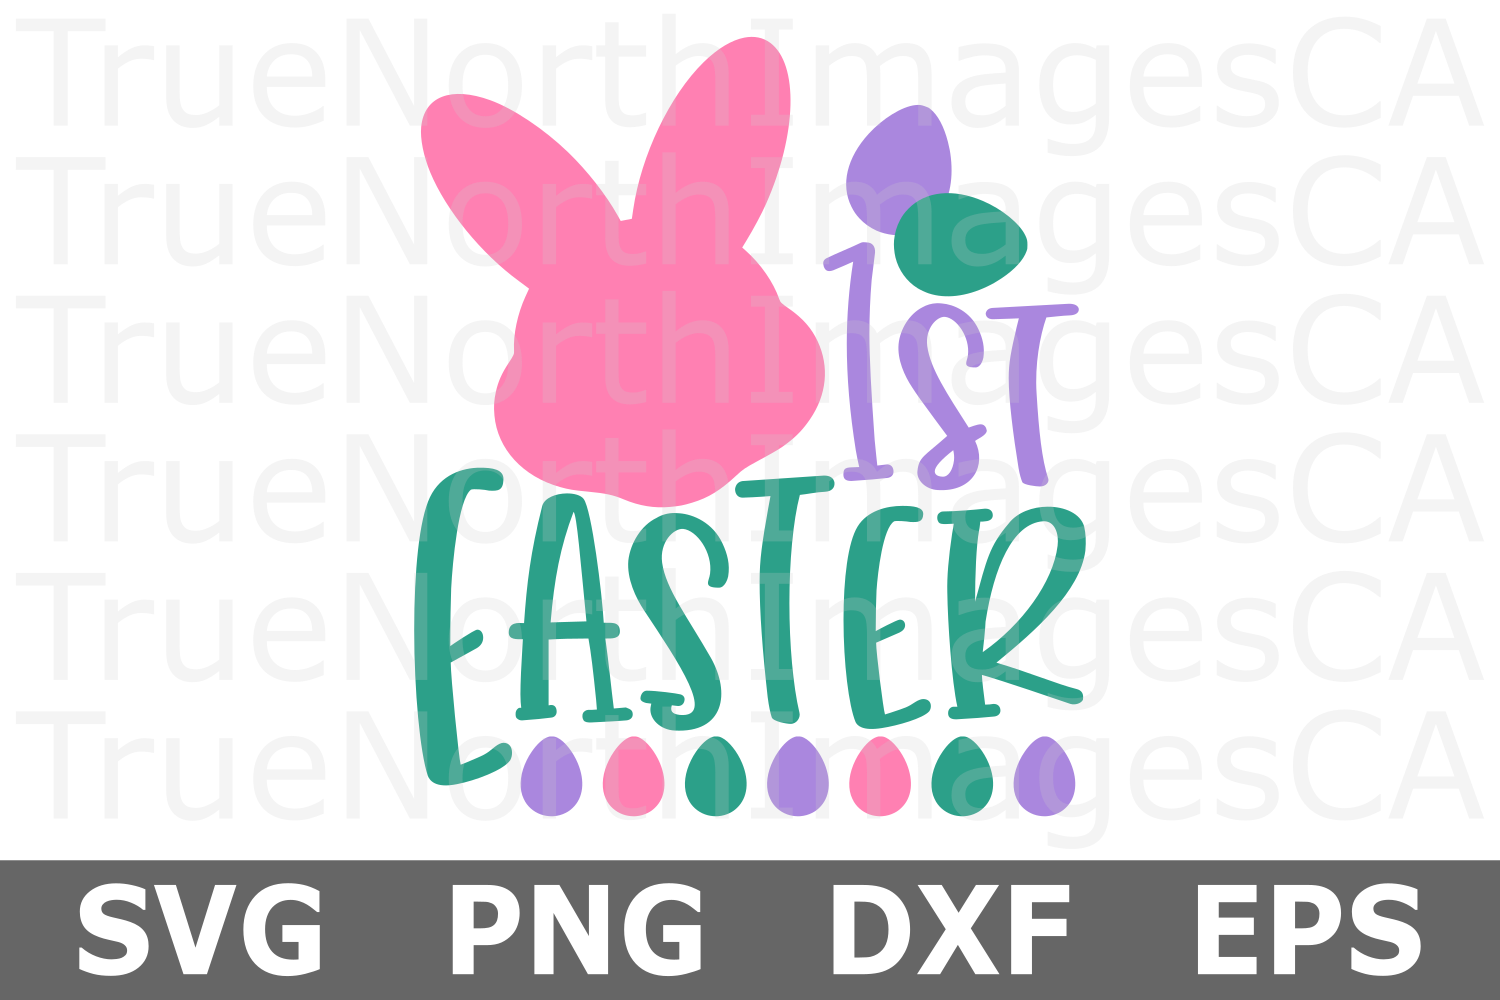 Personalized 1st Easter - An Easter SVG Cut File example image 2